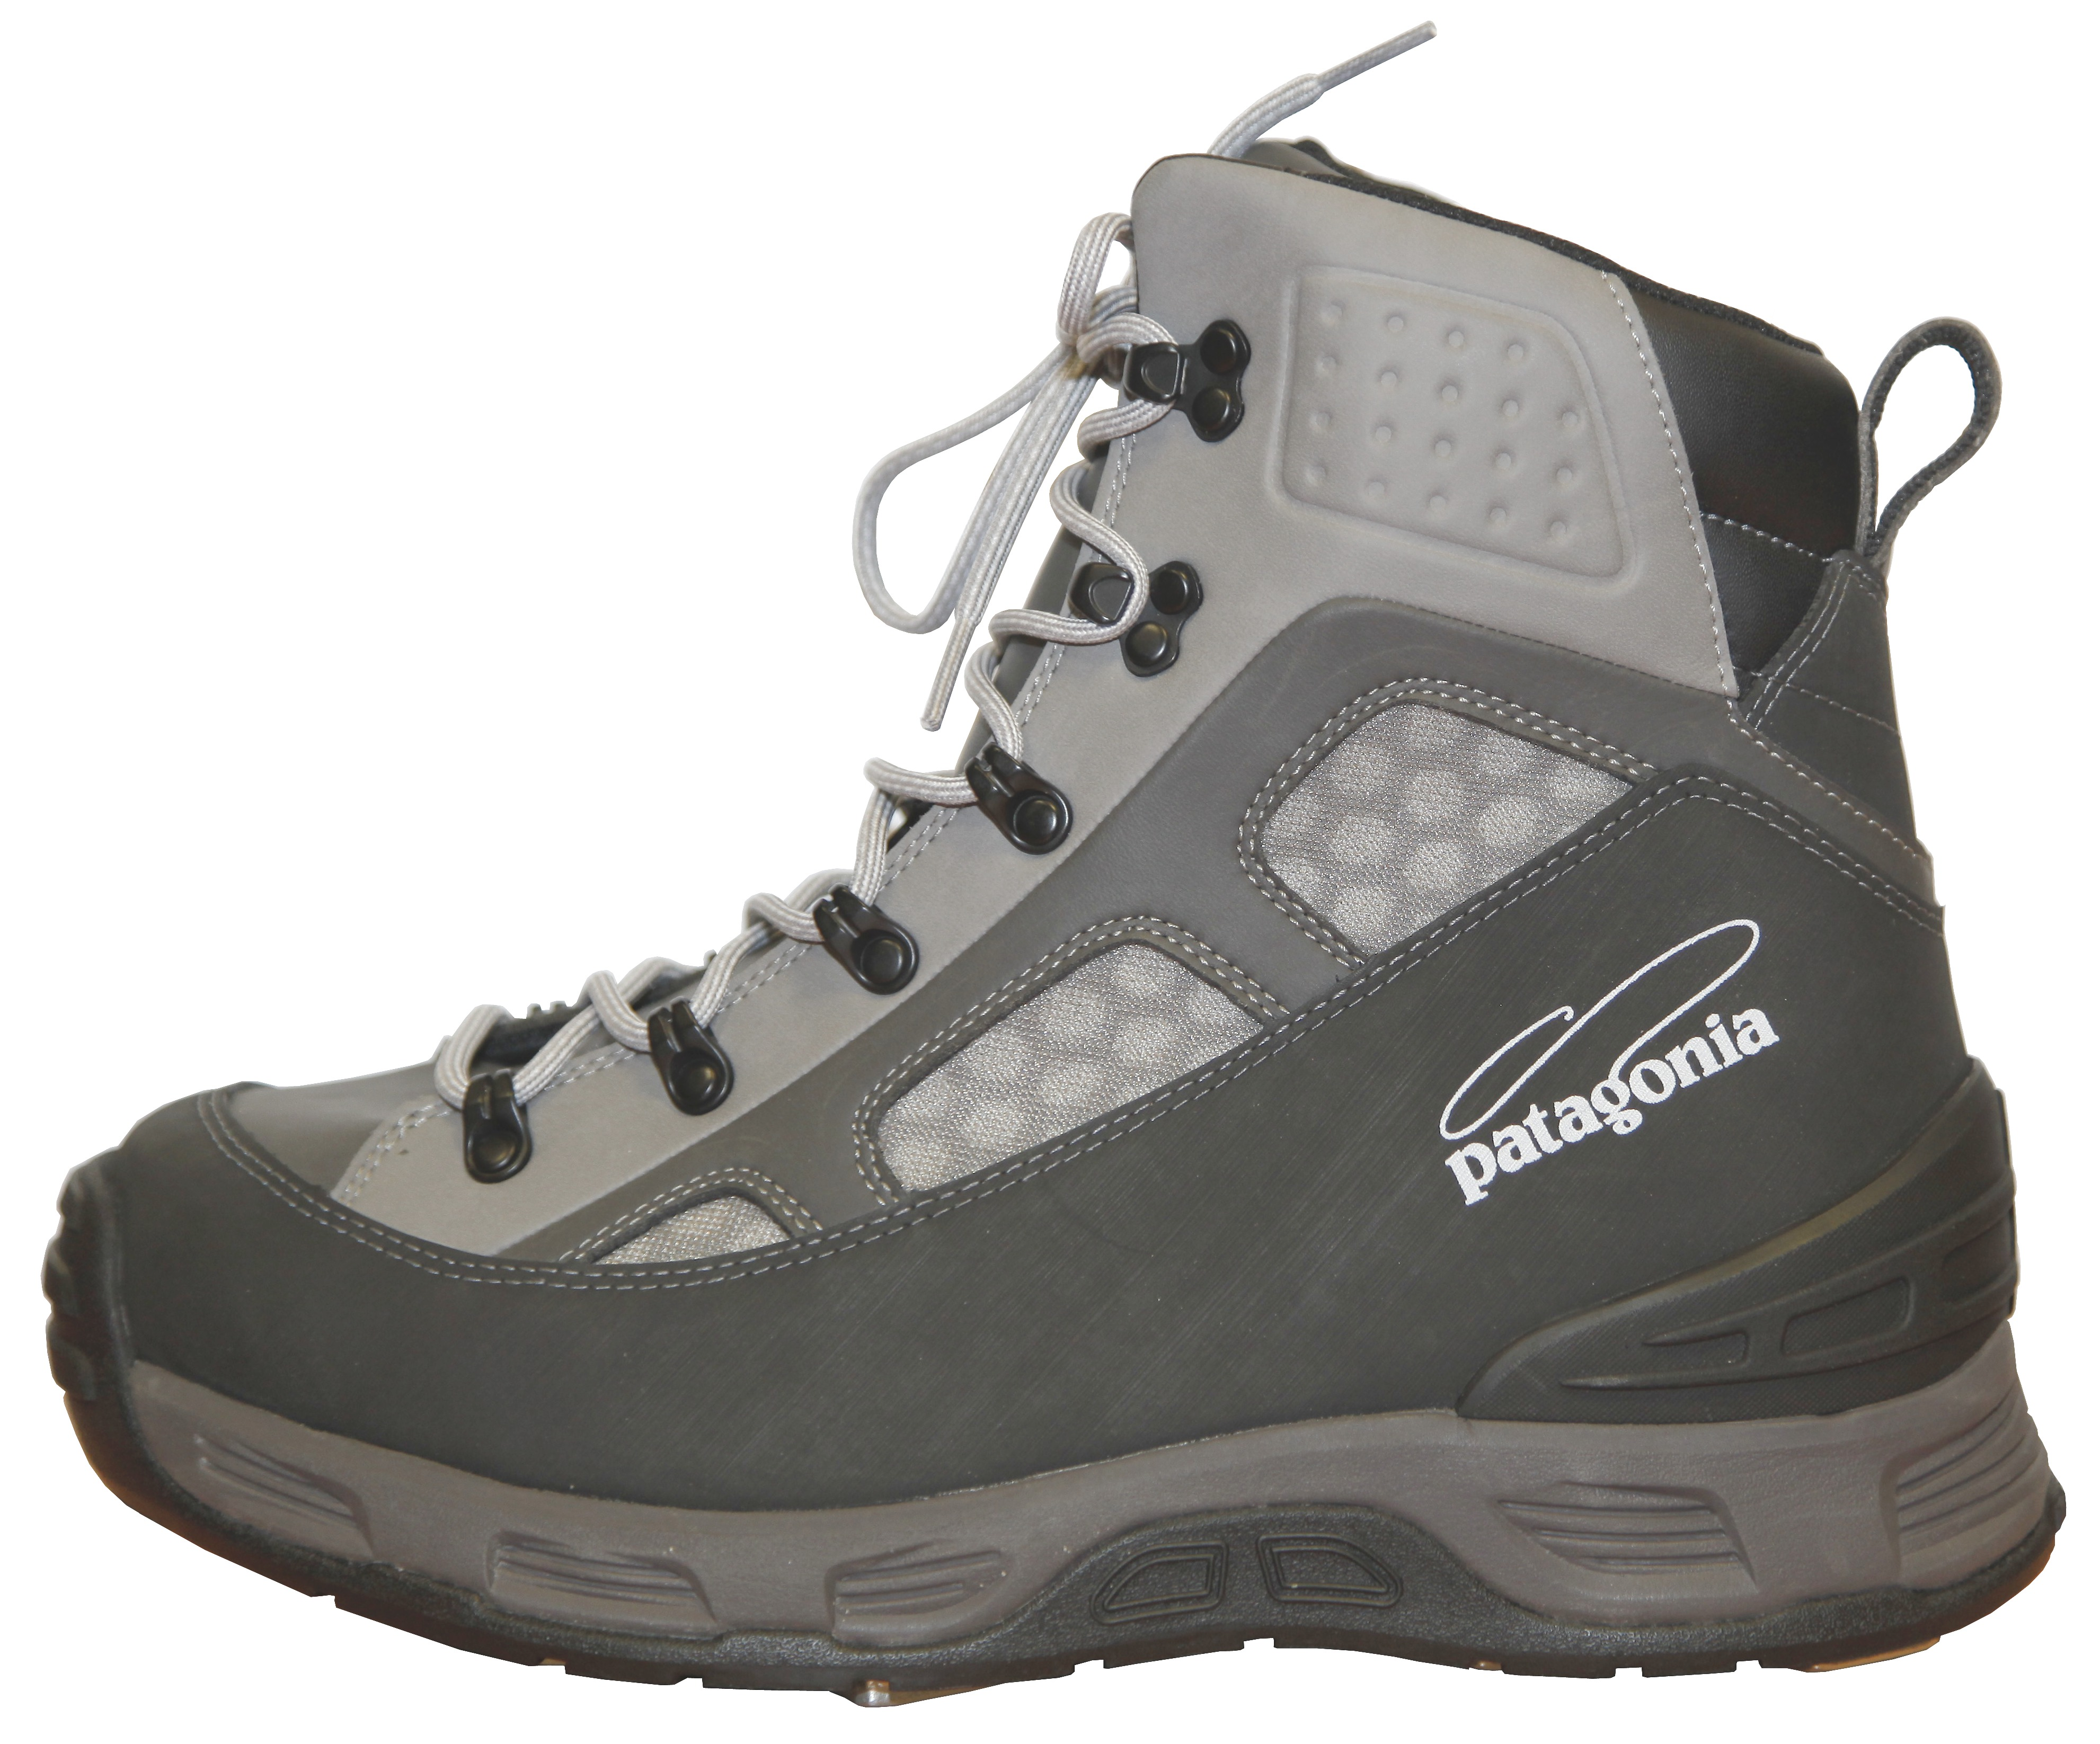 Patagonia foot tractor wading boots narwhal grey glasgow for Wading shoes for fishing